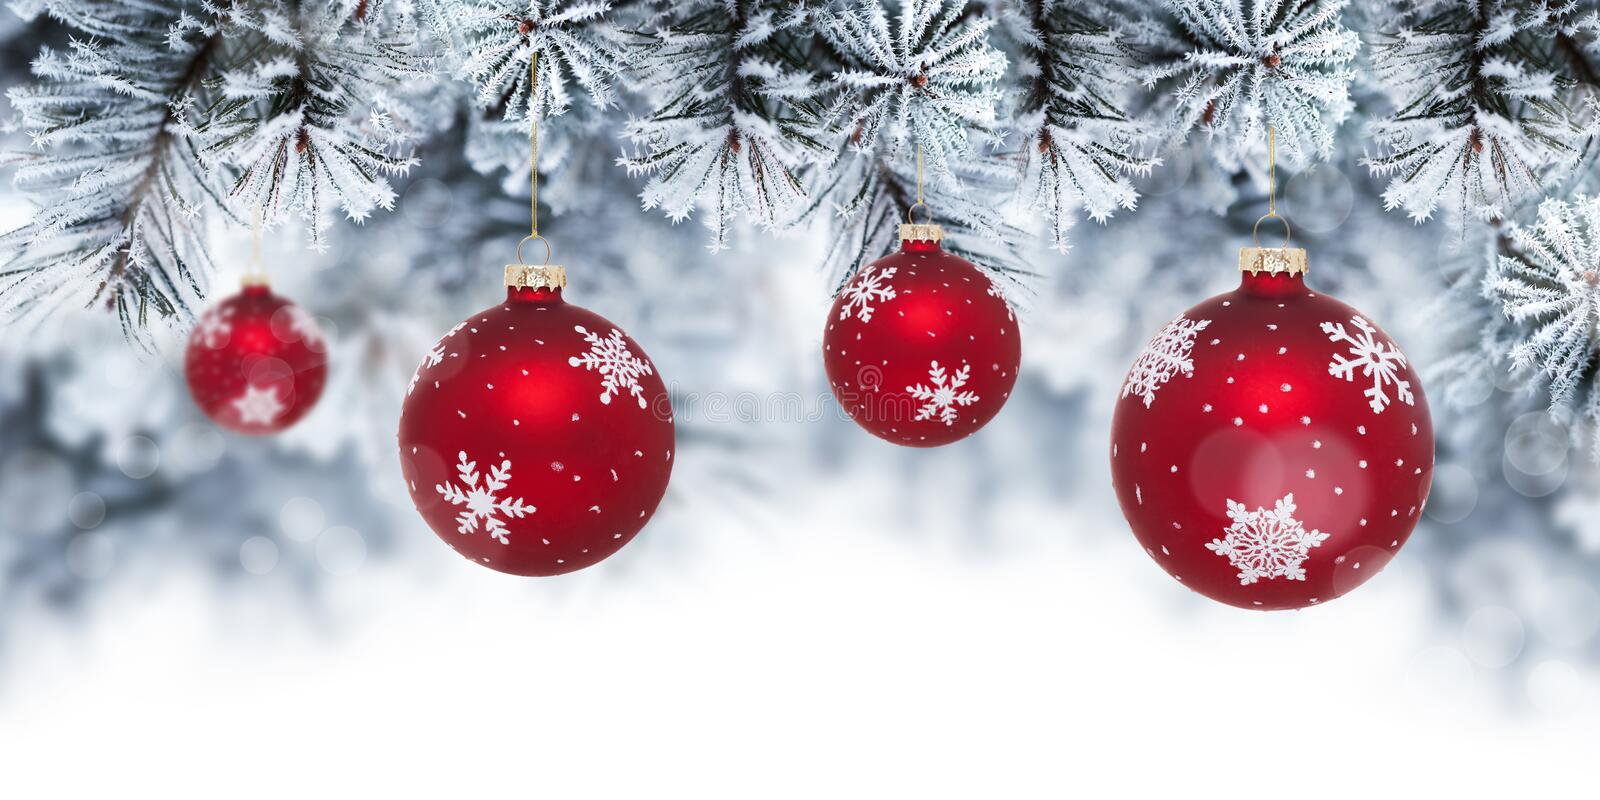 Christmas background with red baubles hanging on pine tree stock photography